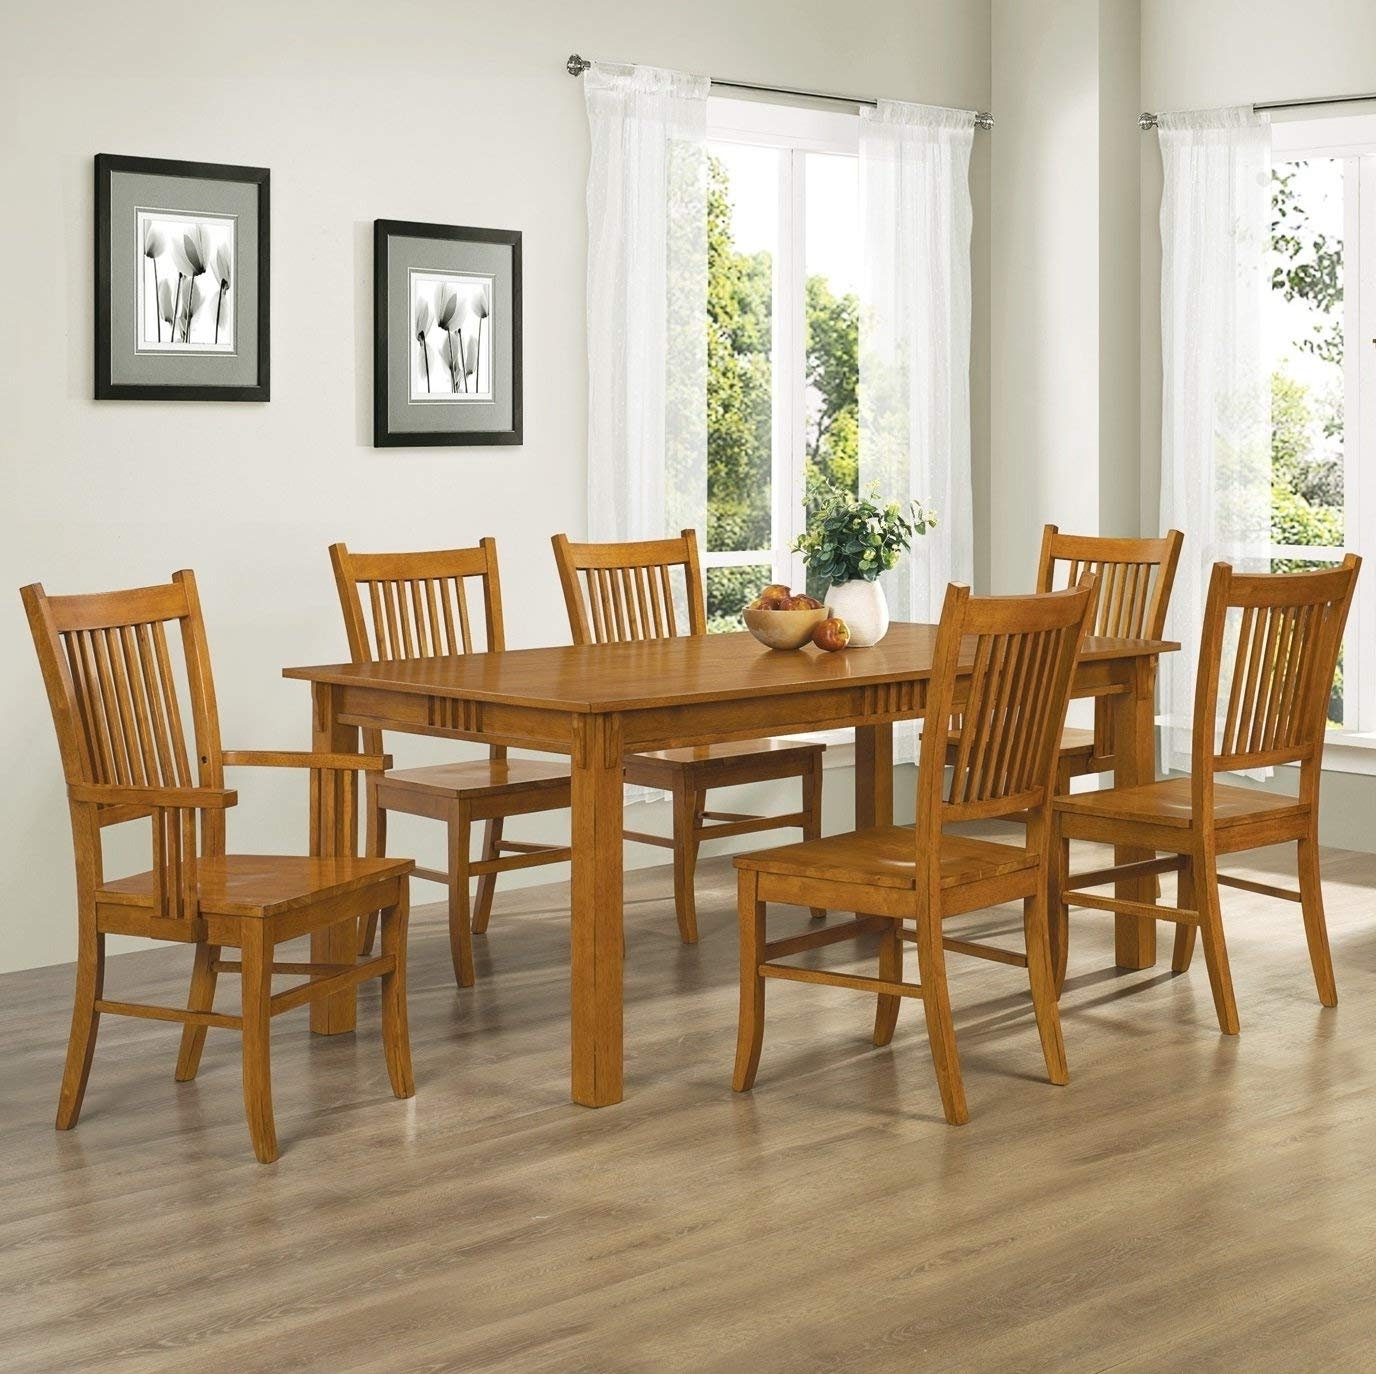 Amazon – Coaster Home Furnishings 7 Piece Mission Style Solid Throughout Trendy Craftsman 7 Piece Rectangle Extension Dining Sets With Arm & Side Chairs (View 1 of 25)